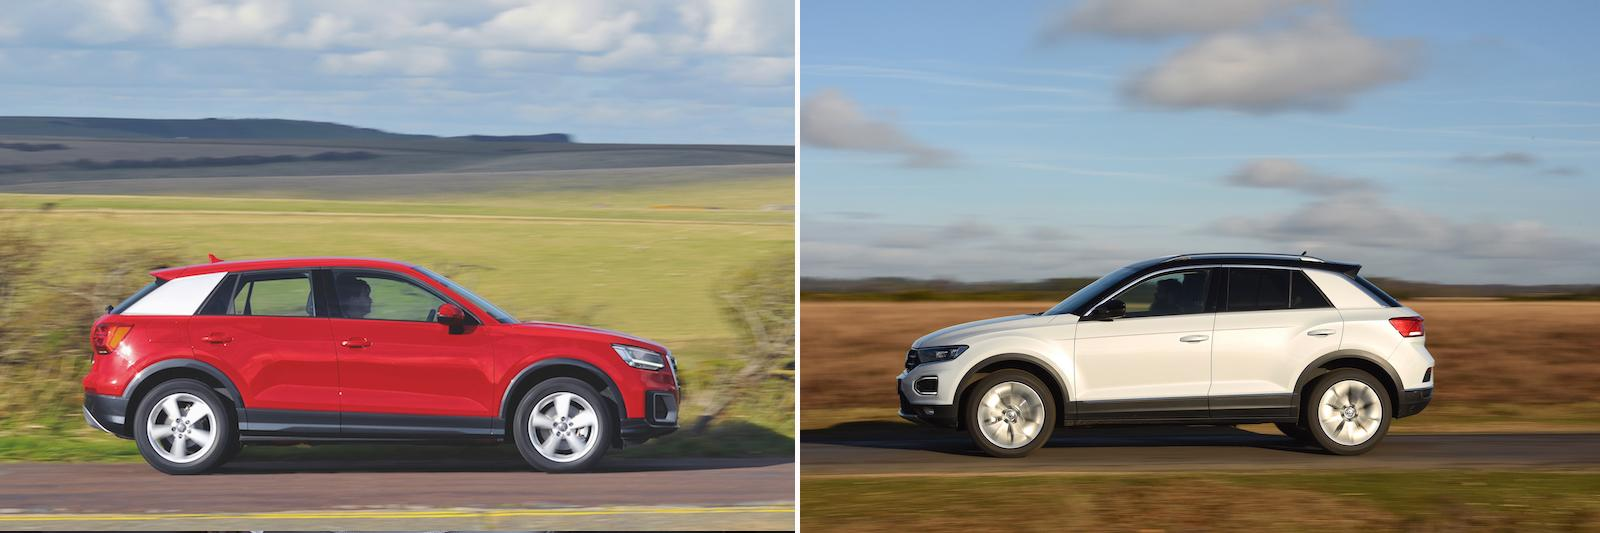 New Volkswagen T-Roc vs used Audi Q2: which is best?